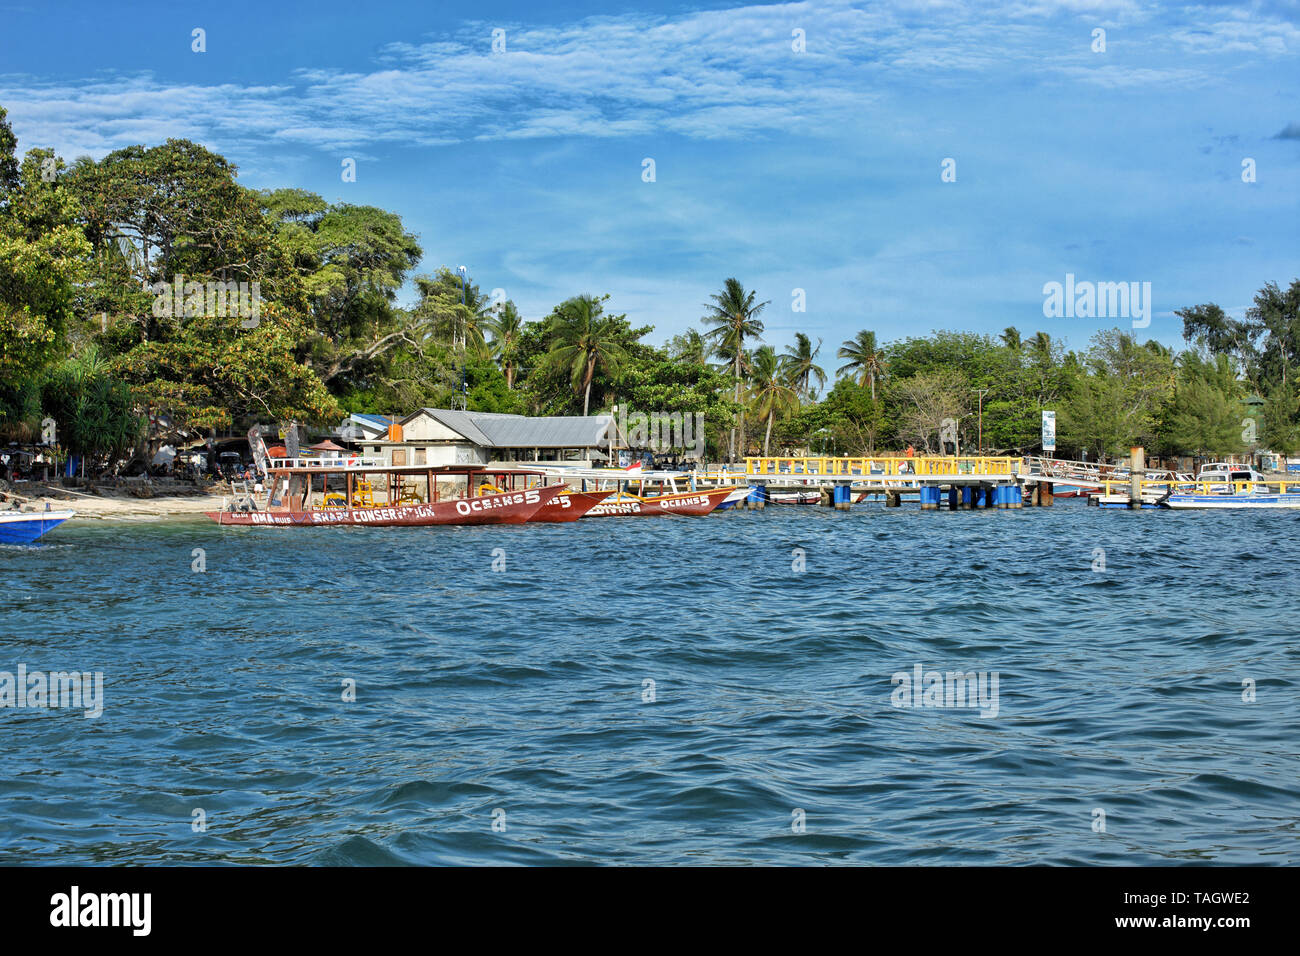 Harbor at Gili Air, Lombok, Indonesia - Stock Image